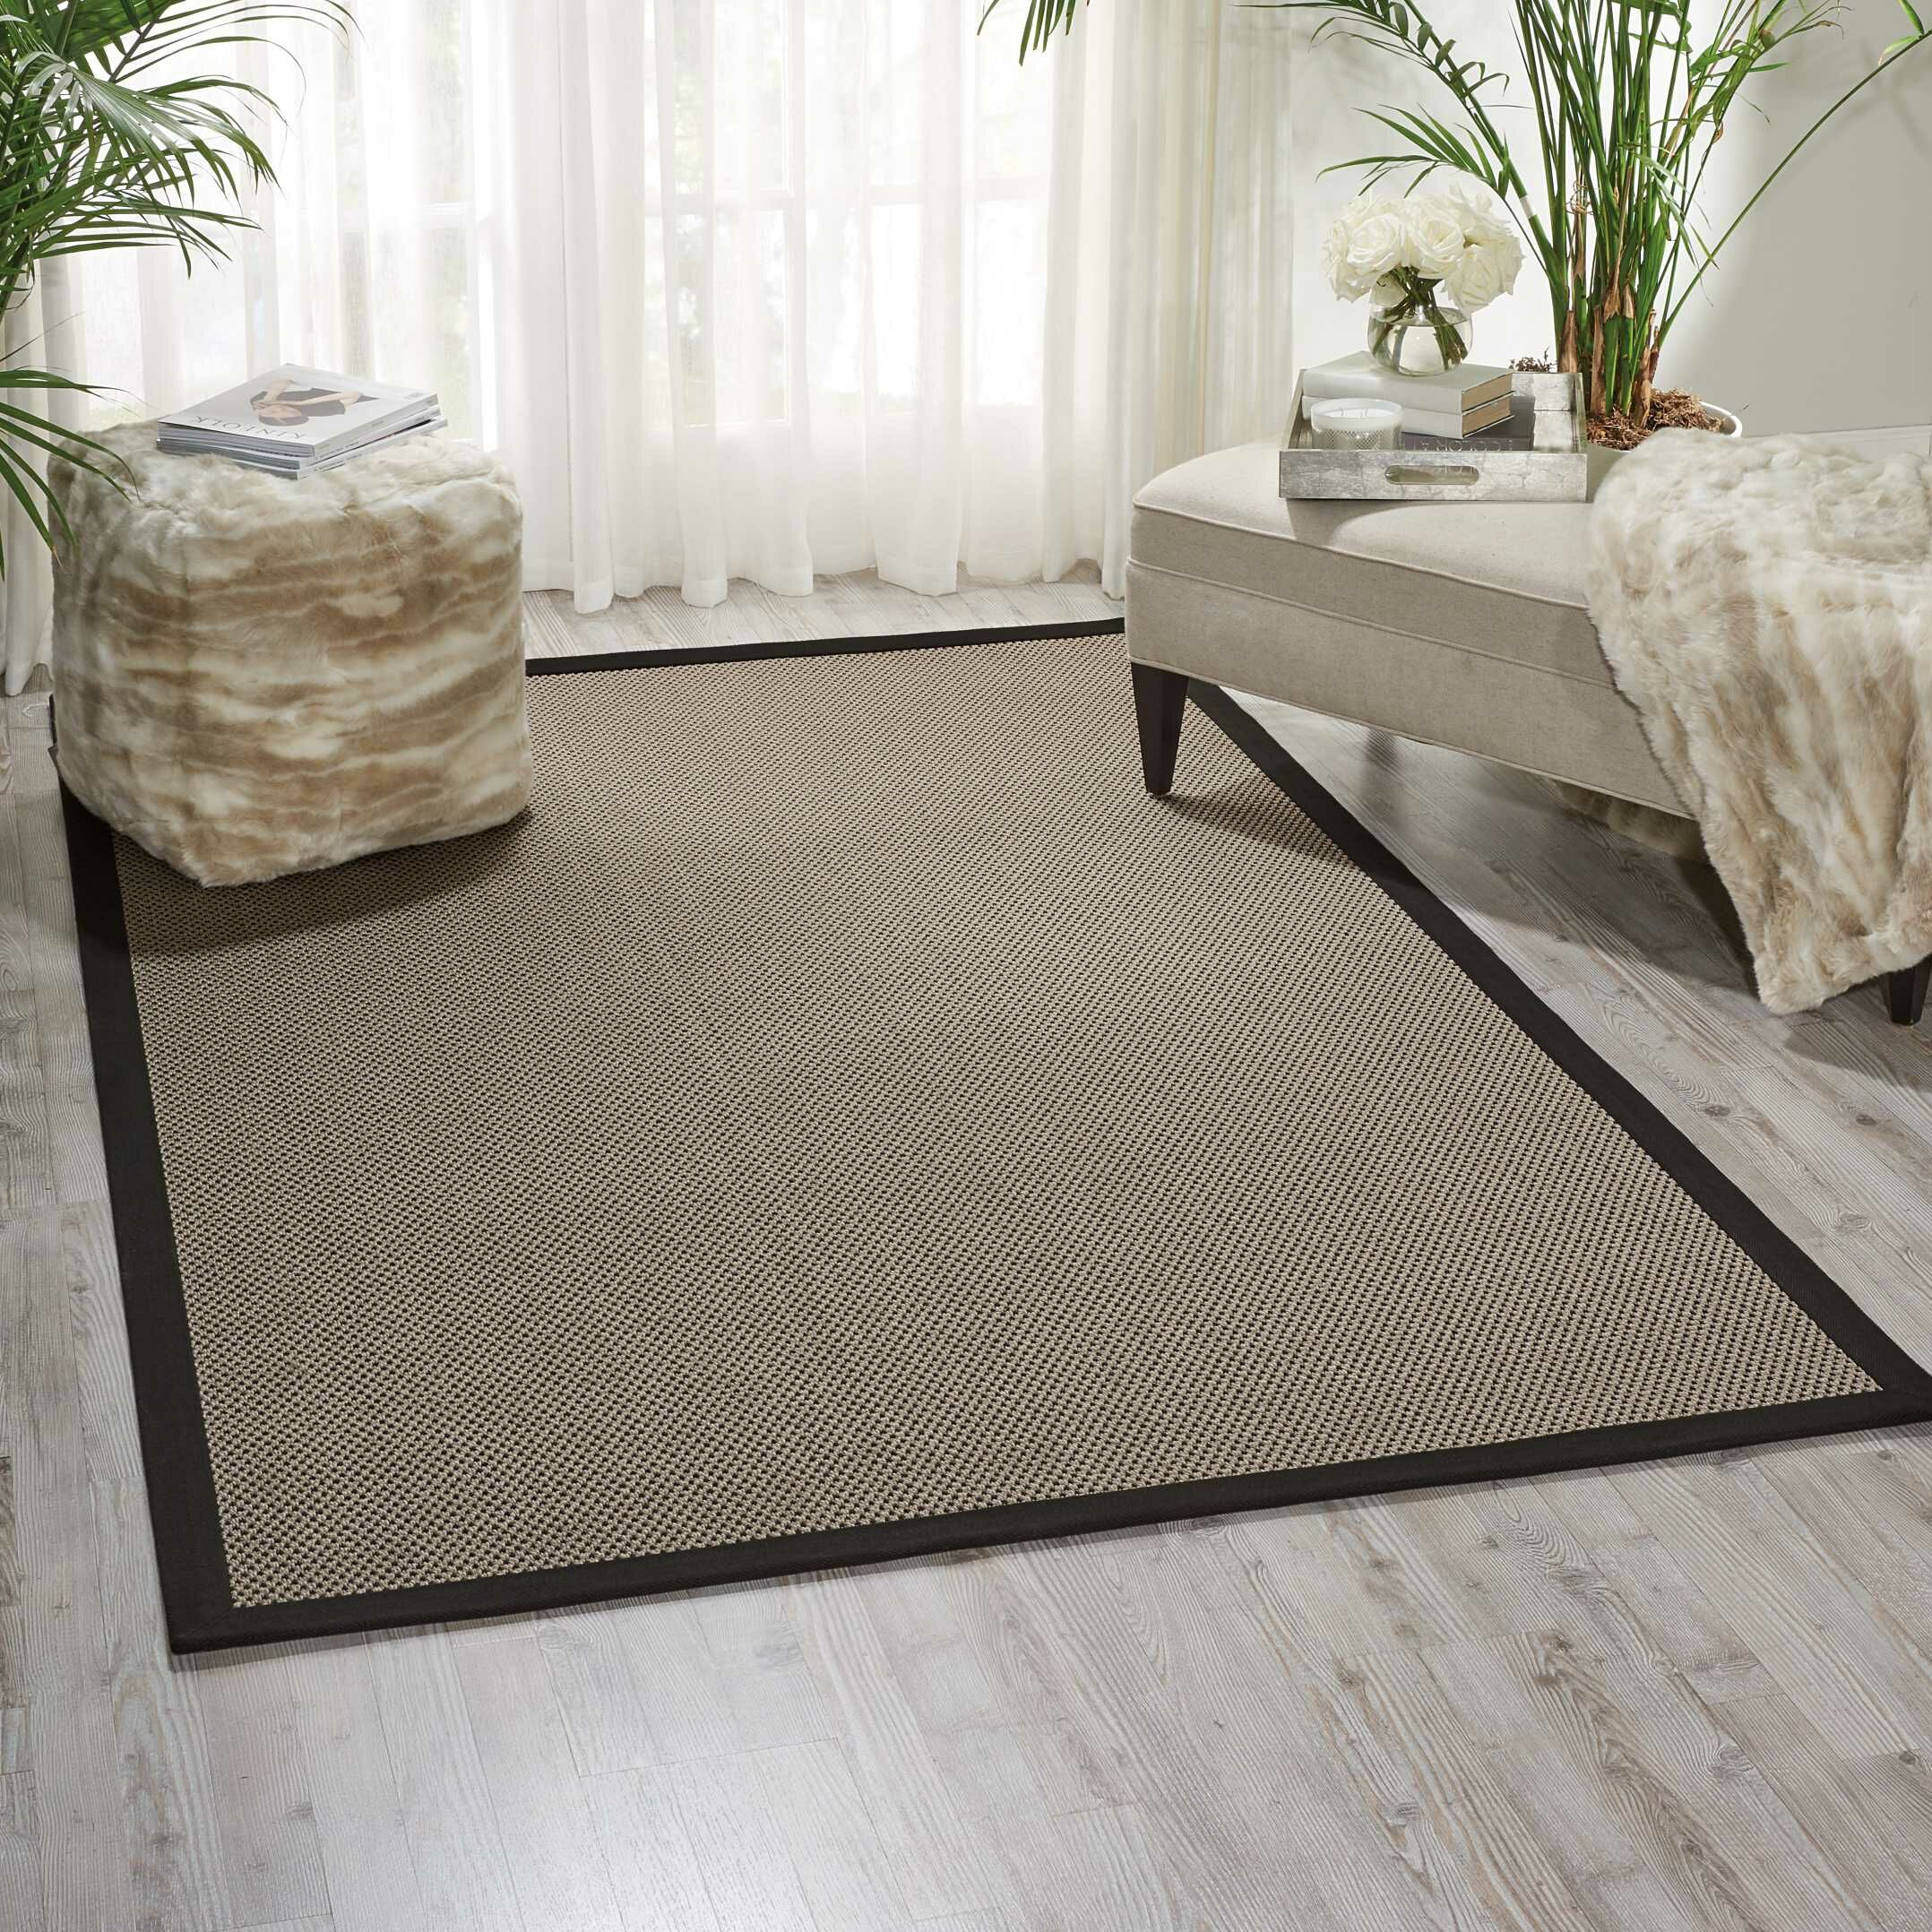 Seacor Gray Indoor/Outdoor Area Rug Rug Size: Rectangle 8' x 10'